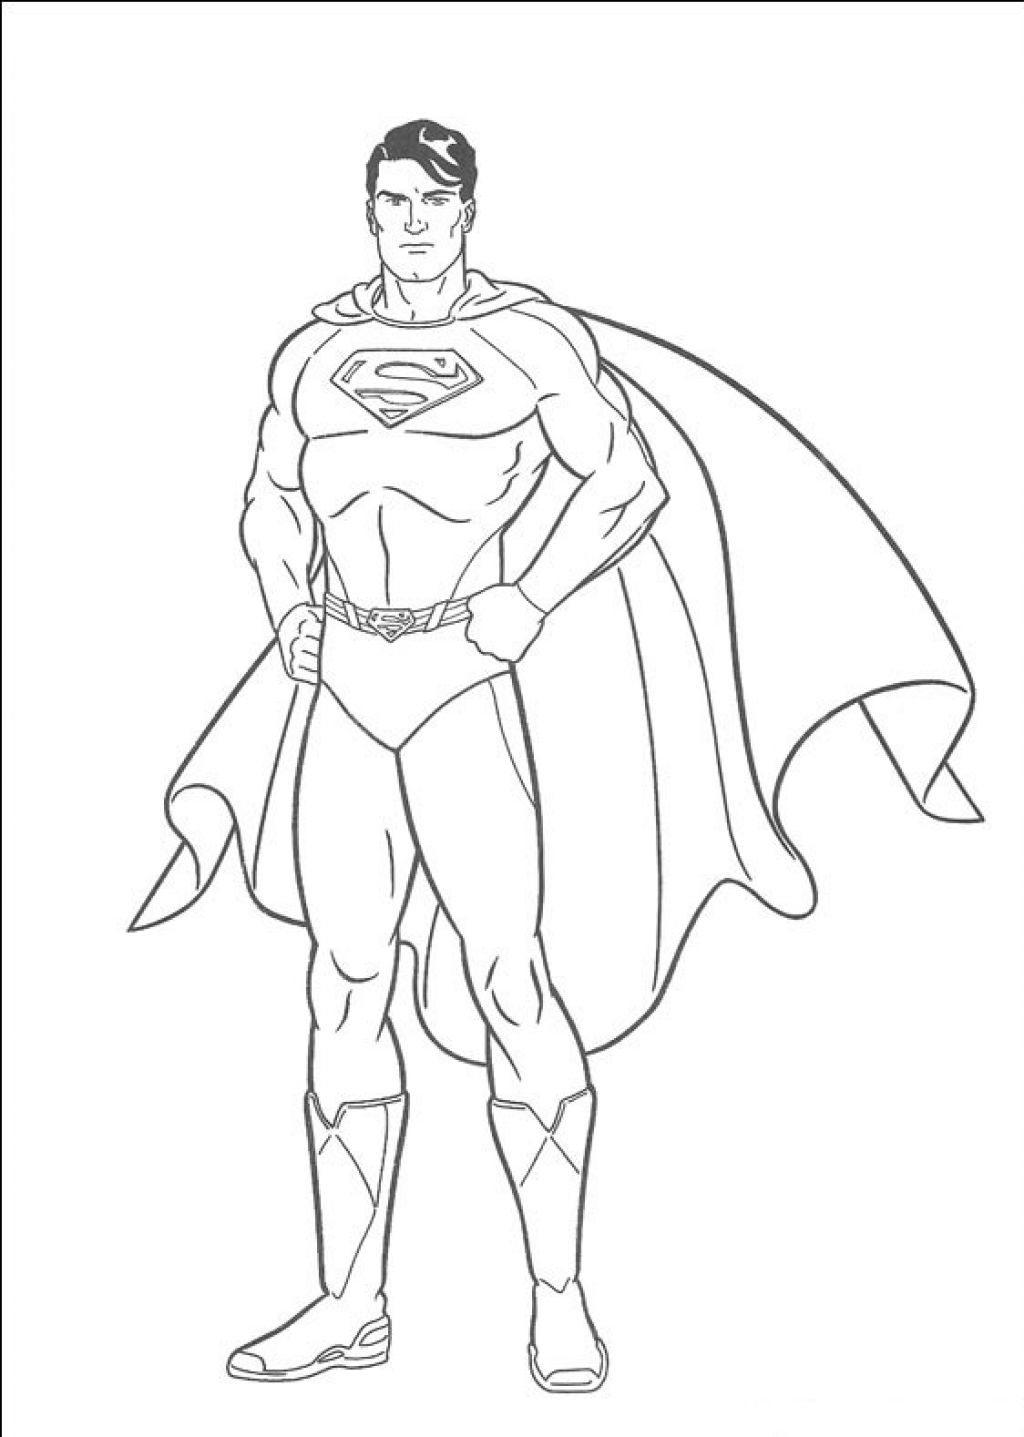 Superman Symbol Drawing at GetDrawings.com | Free for personal use ...